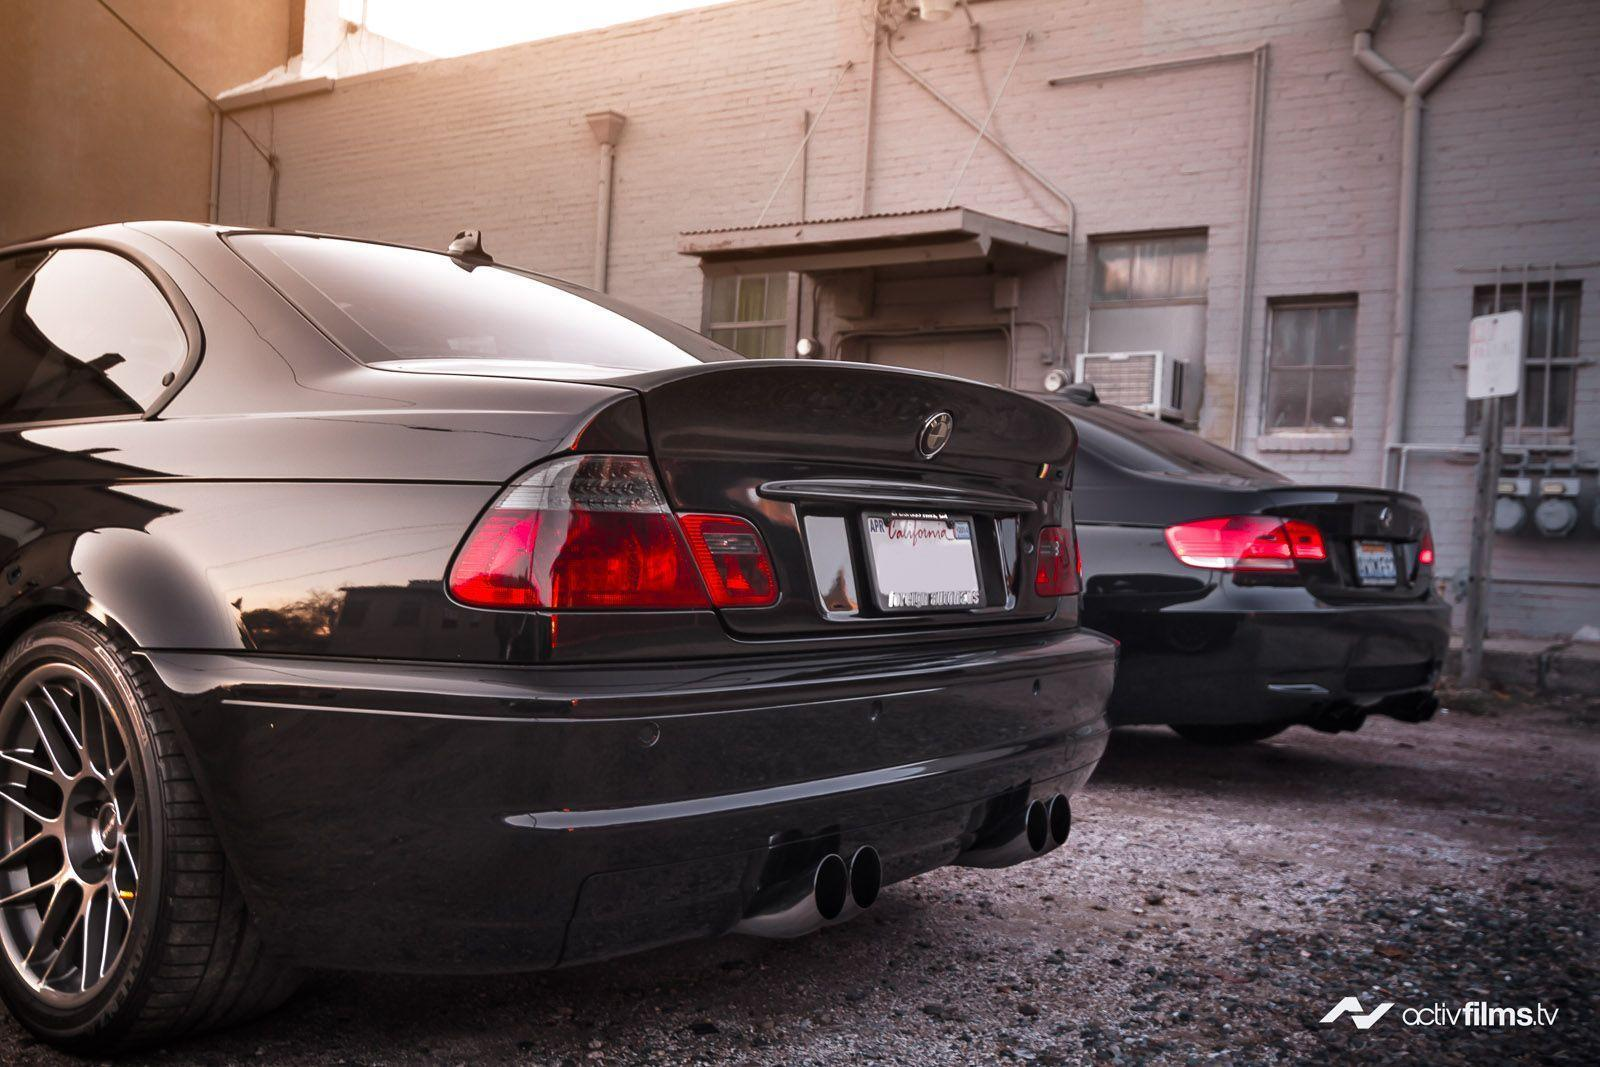 Wallpapers: BMW E92 M3 And BMW E46 M3 By ActivFilms.TV